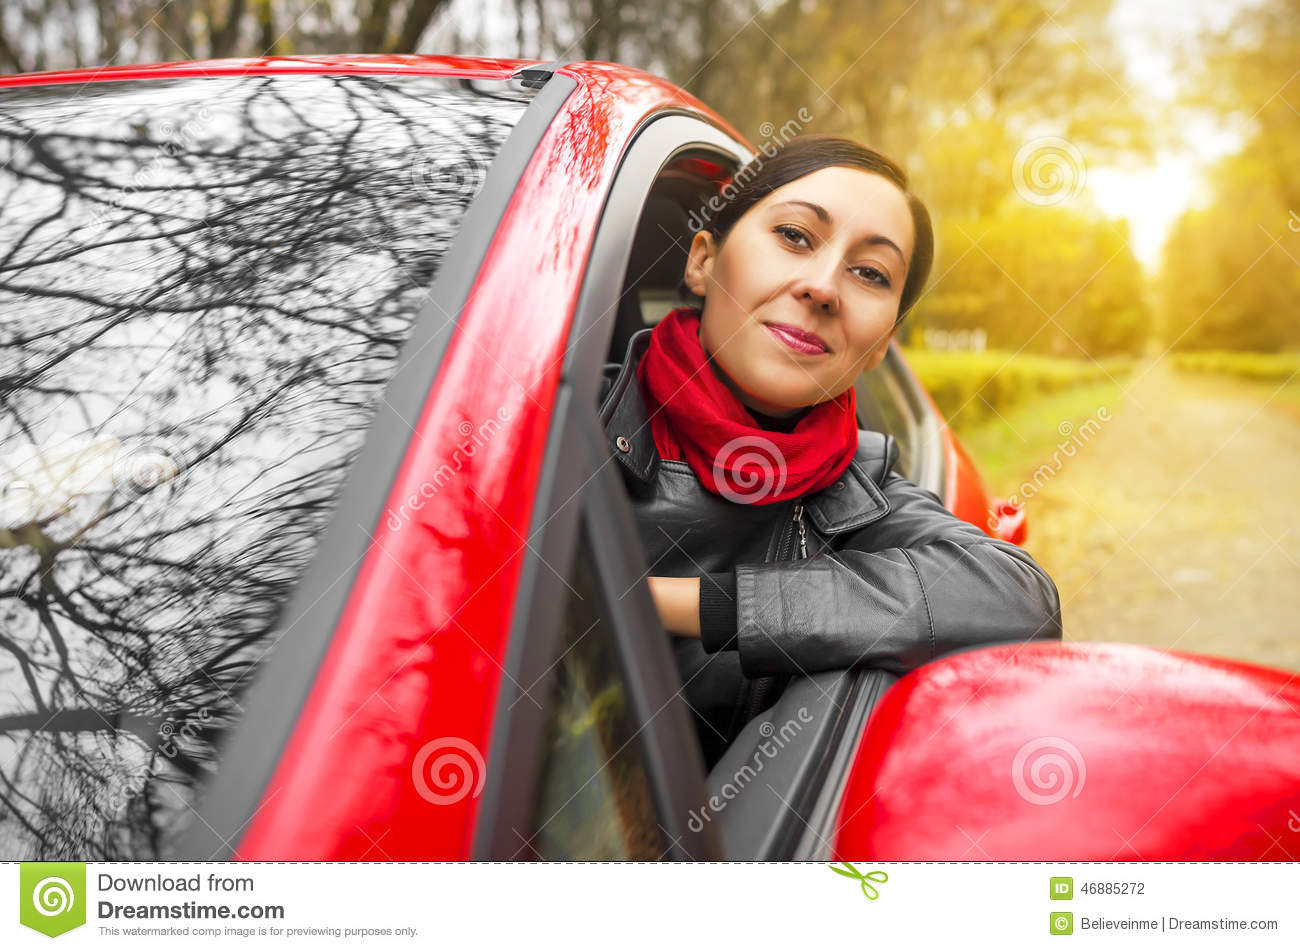 Girl driving a red car.